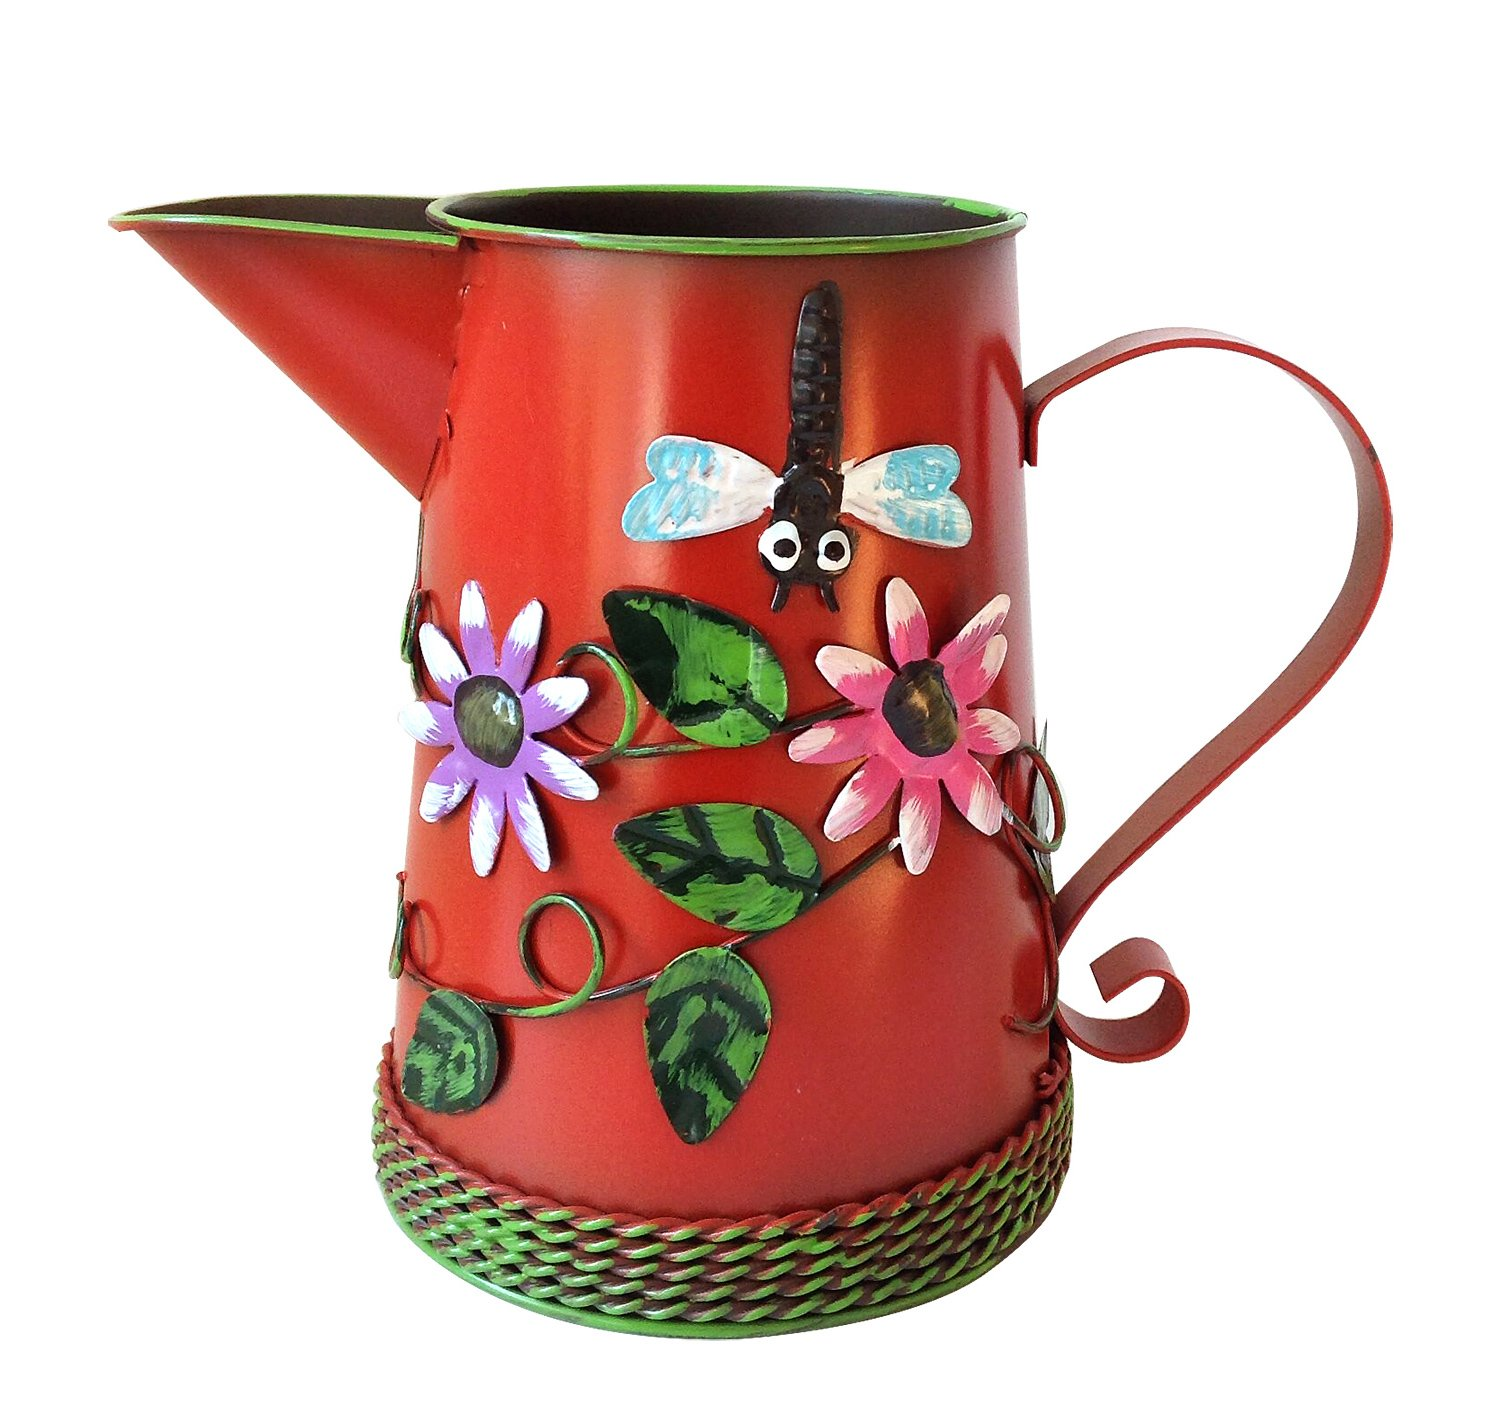 Goodman and Wife Country Chic Metal Watering Can with Raised Flowers Ladybug Butterfly Dragonfly Ladybug. Dark Red